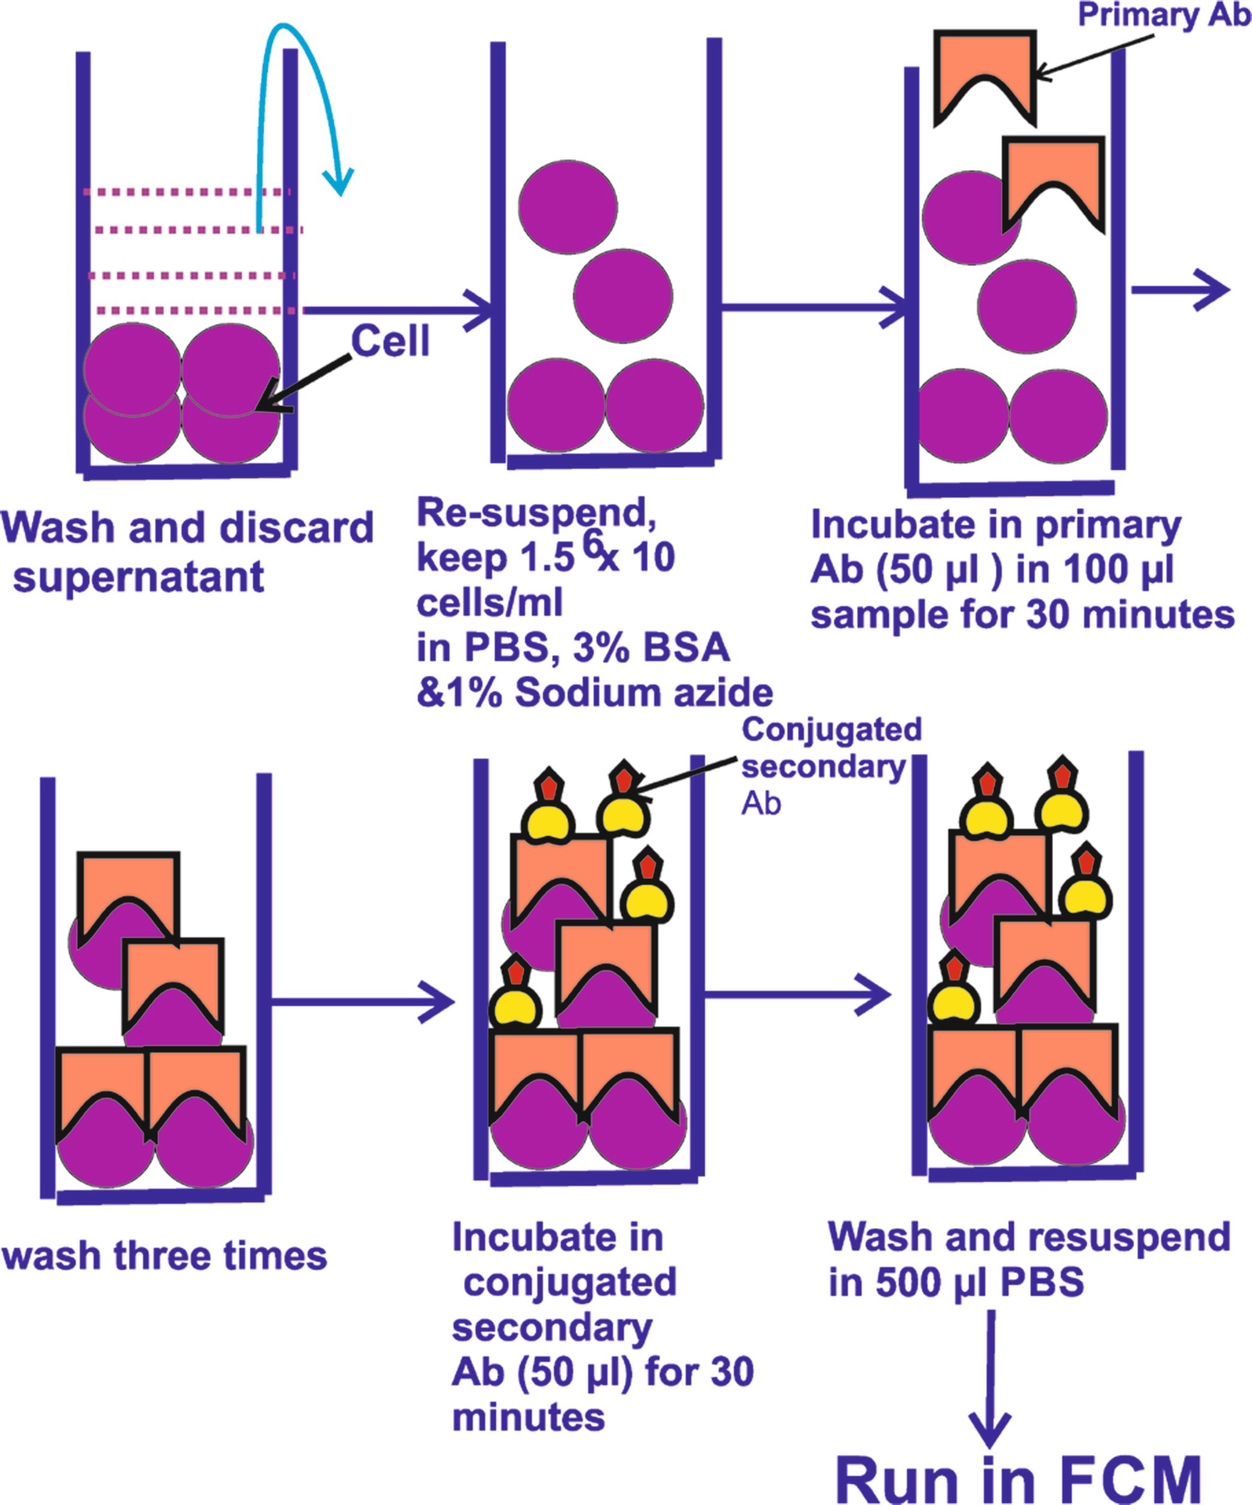 Flow Cytometry: Basic Principles, Procedure and Applications